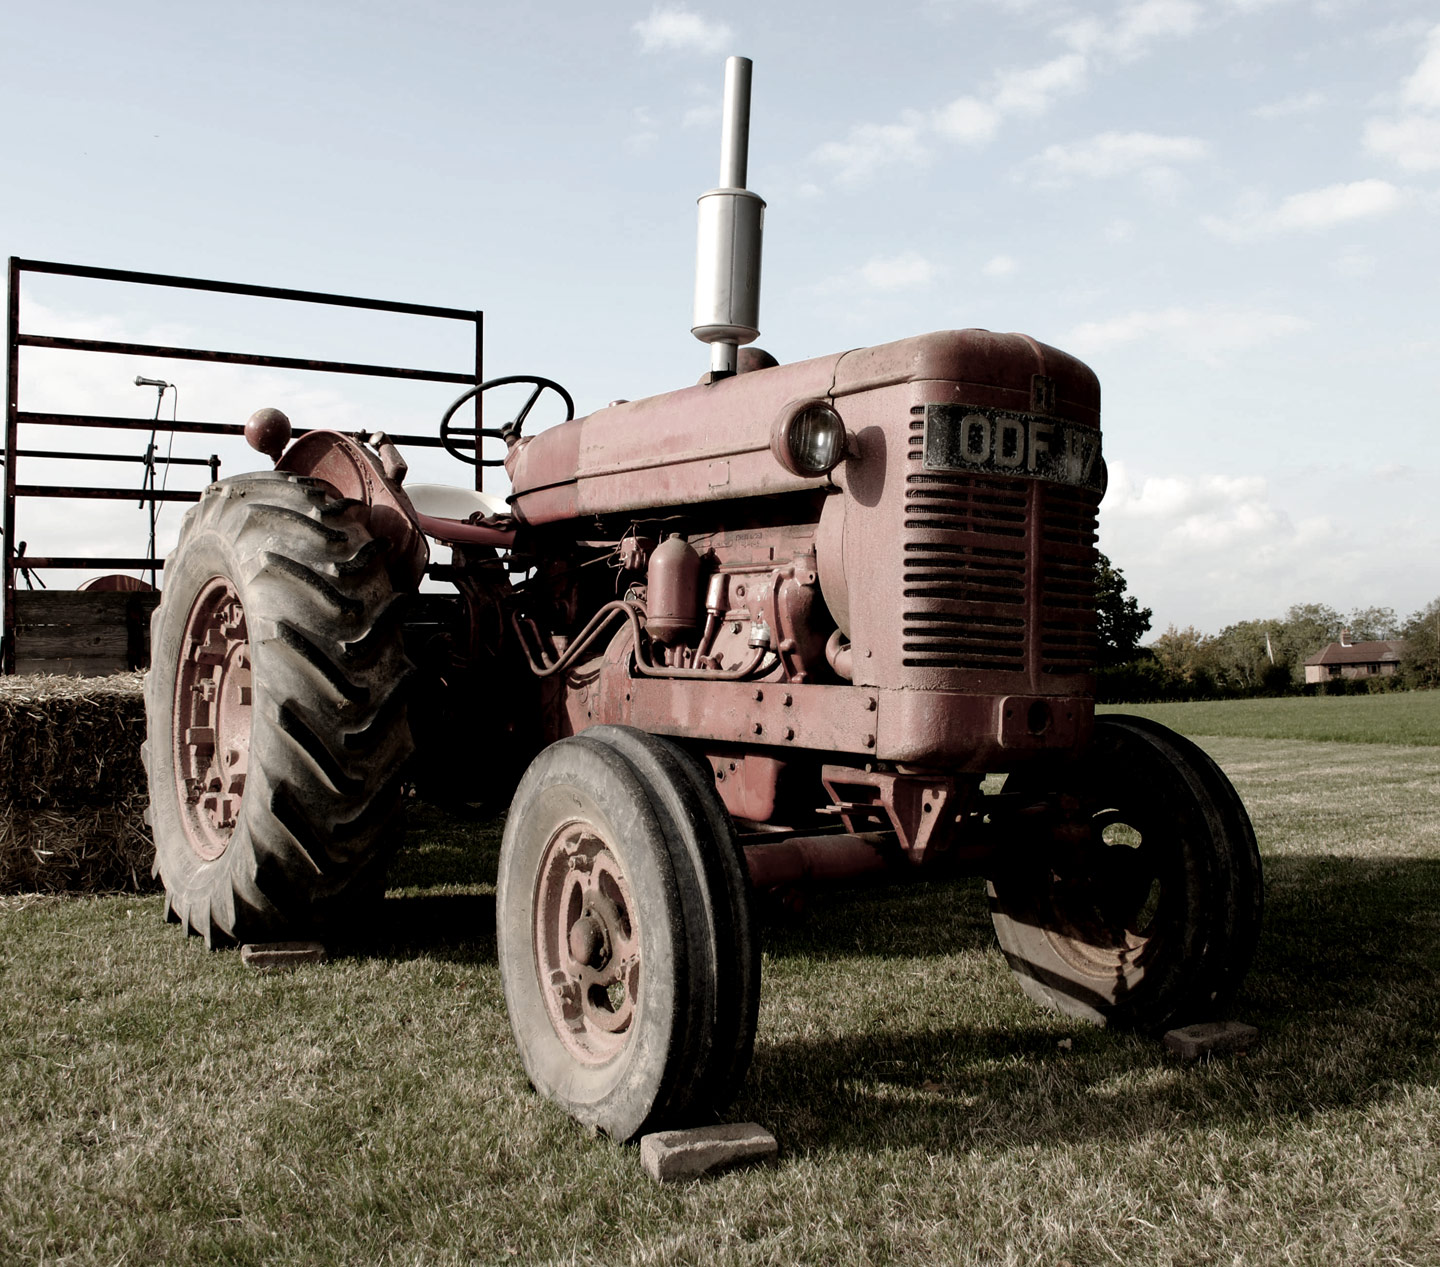 ICMSTUDIOS - Lovely Old tractor